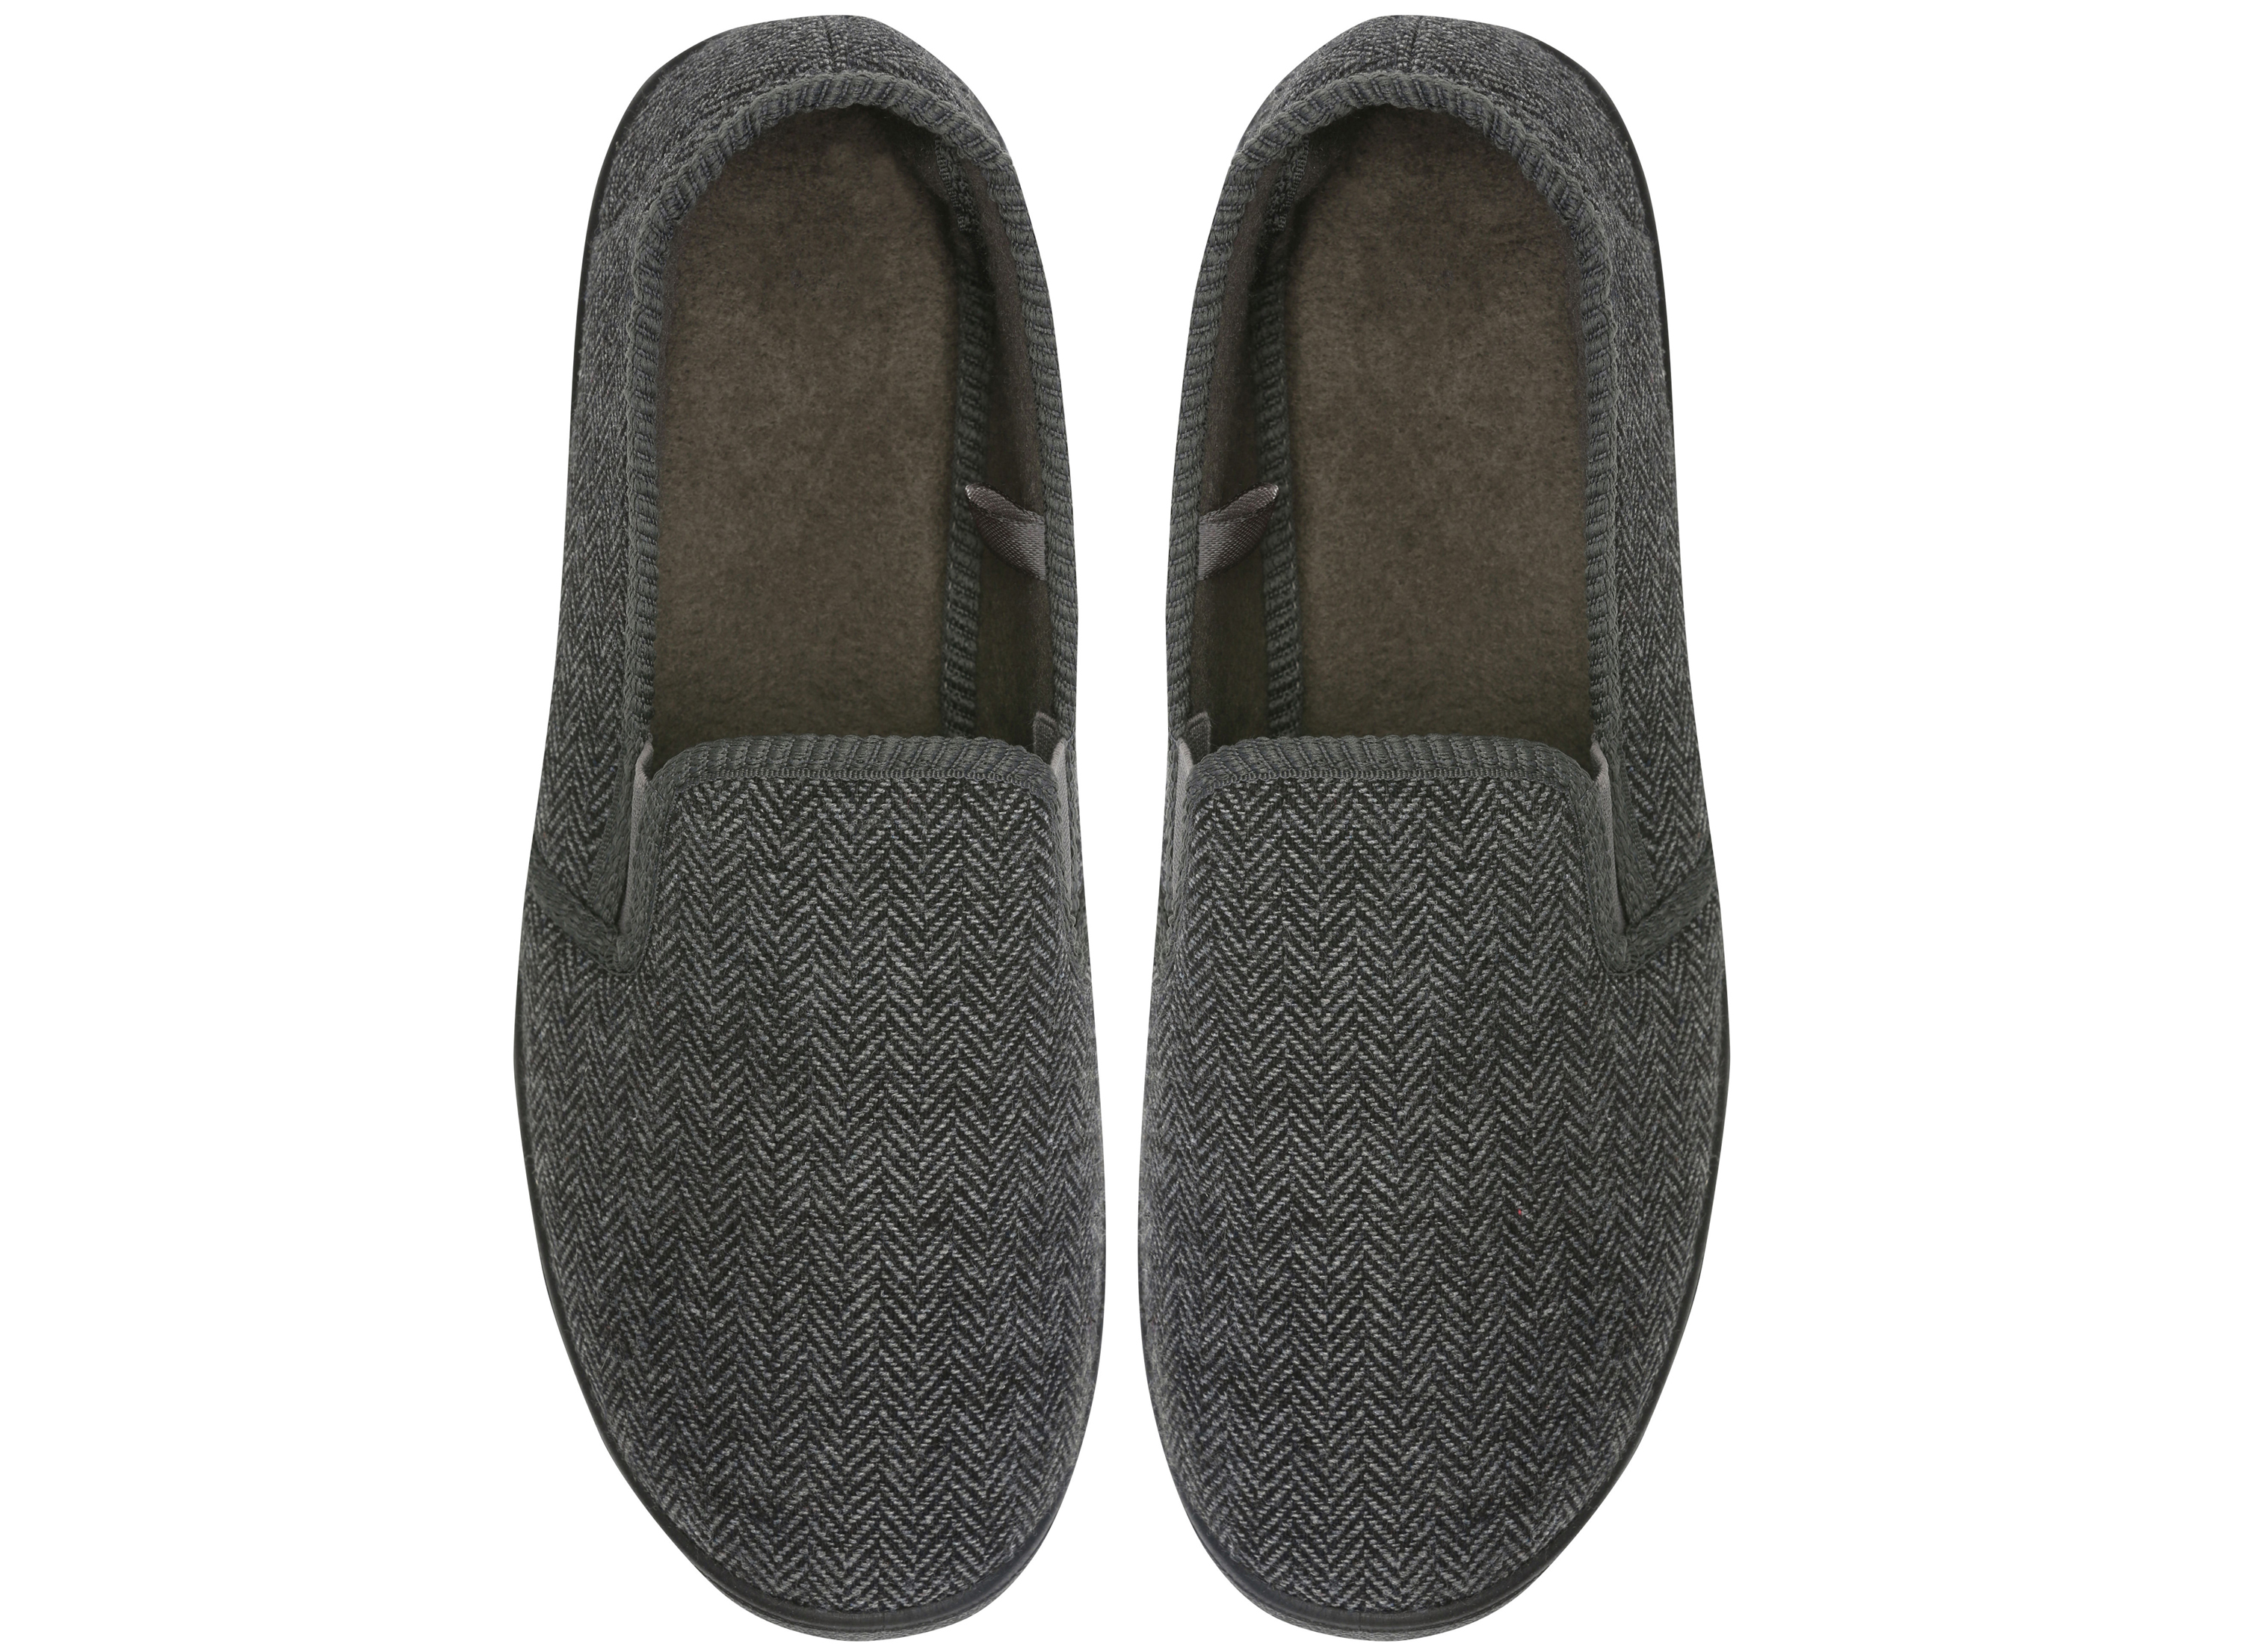 M&Co Textured Slippers